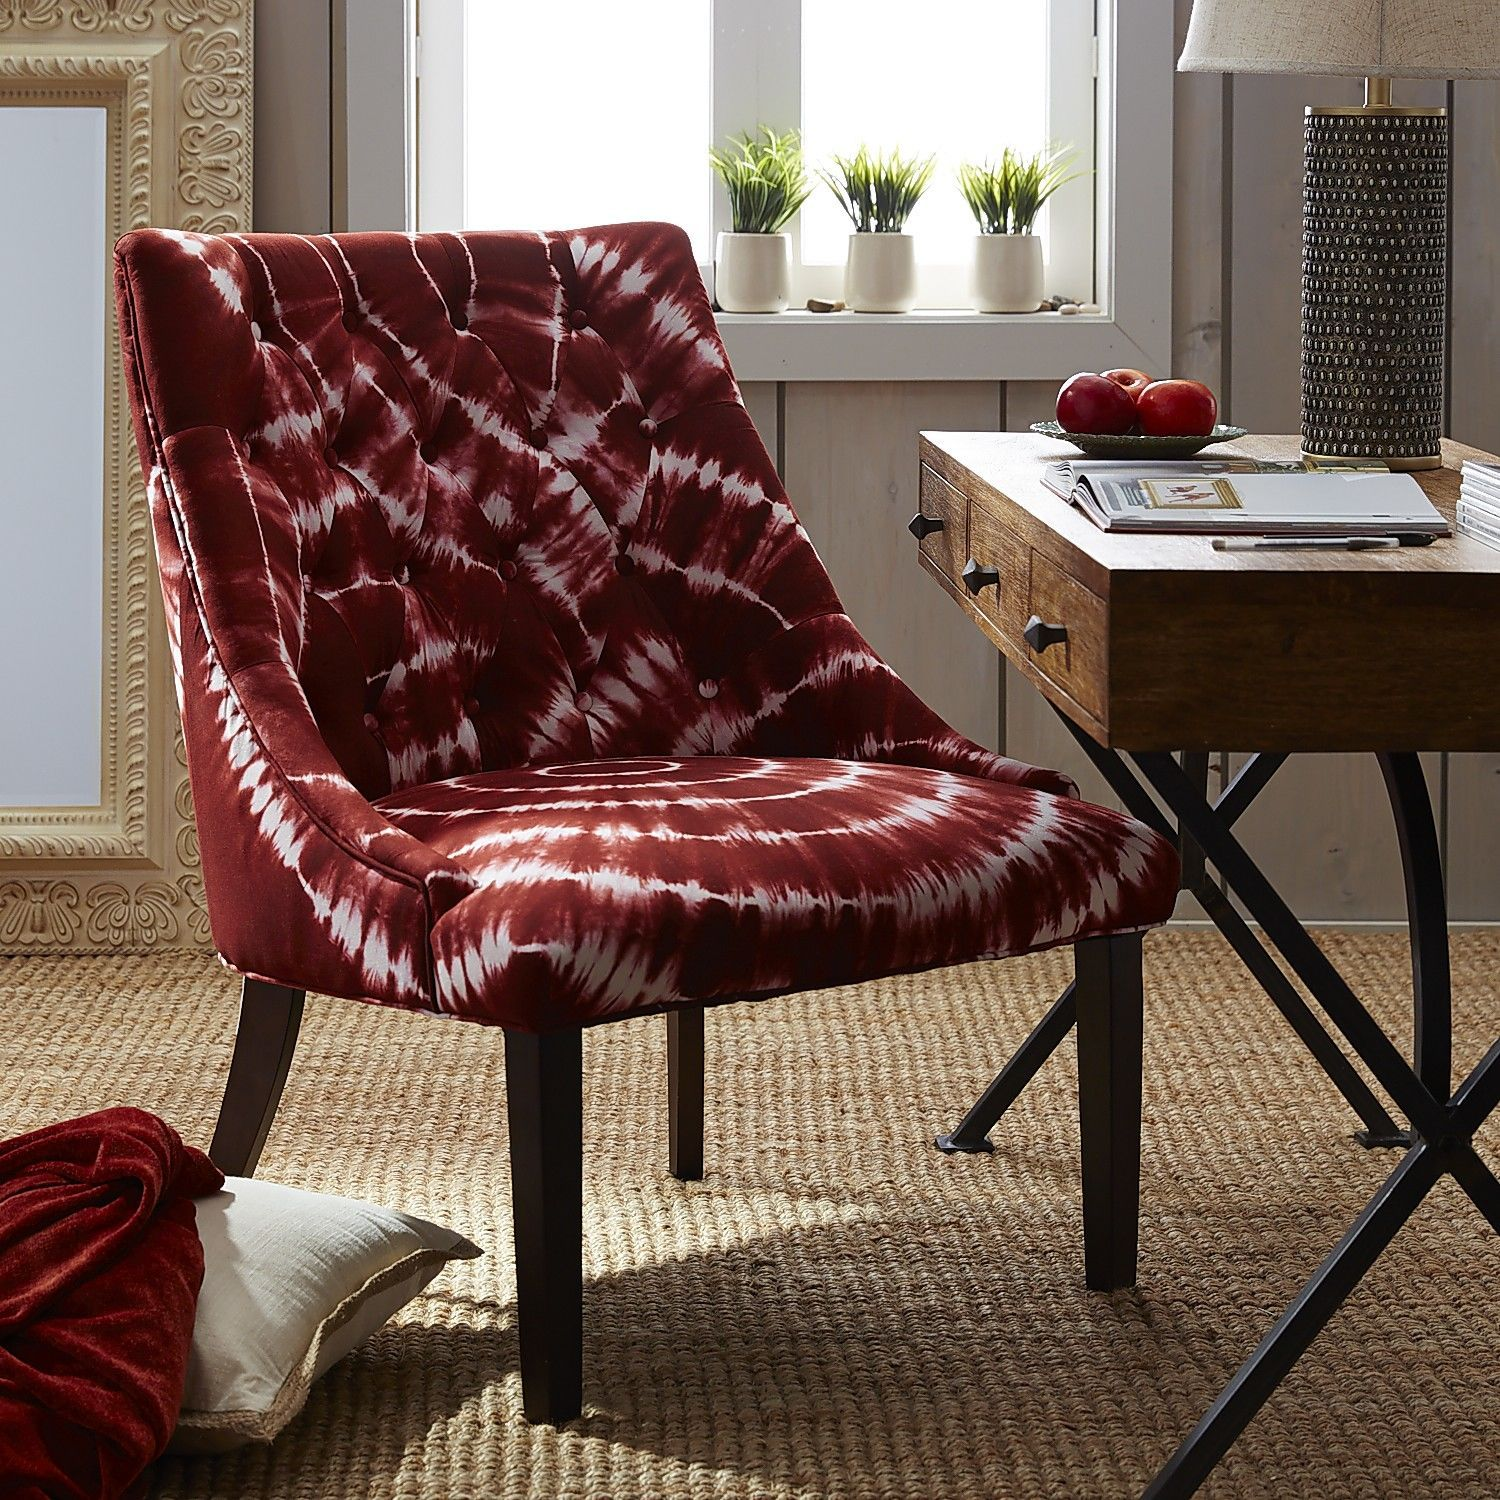 pier 1 living room rugs%0A Adriel Chair  Berry   Pier   Imports